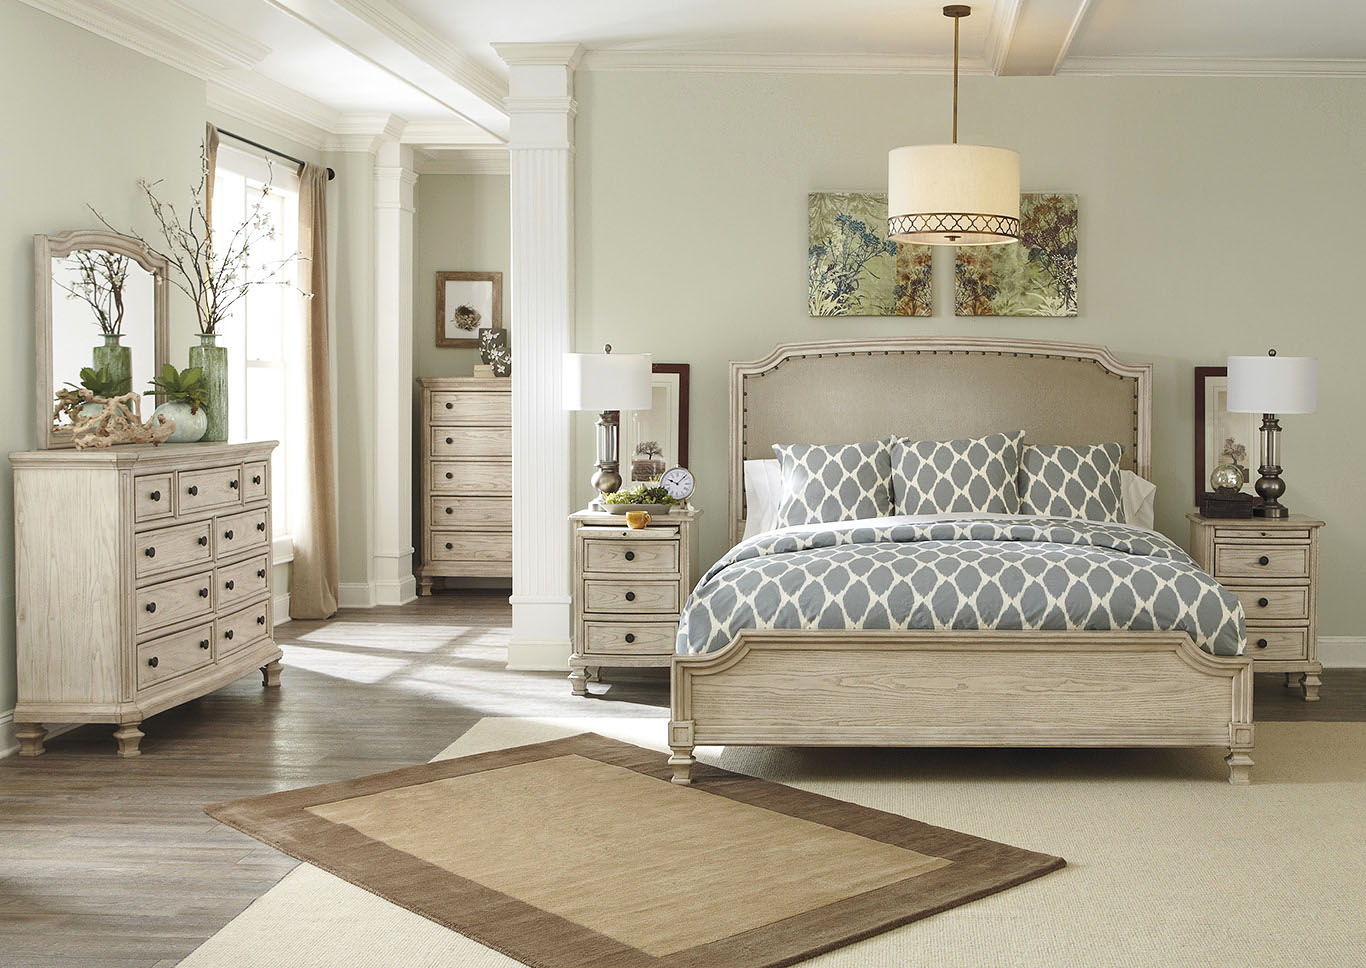 Demarlos Queen Upholstered Panel Bed w/Dresser, Mirror, Drawer Chest & Night Table,Signature Design By Ashley